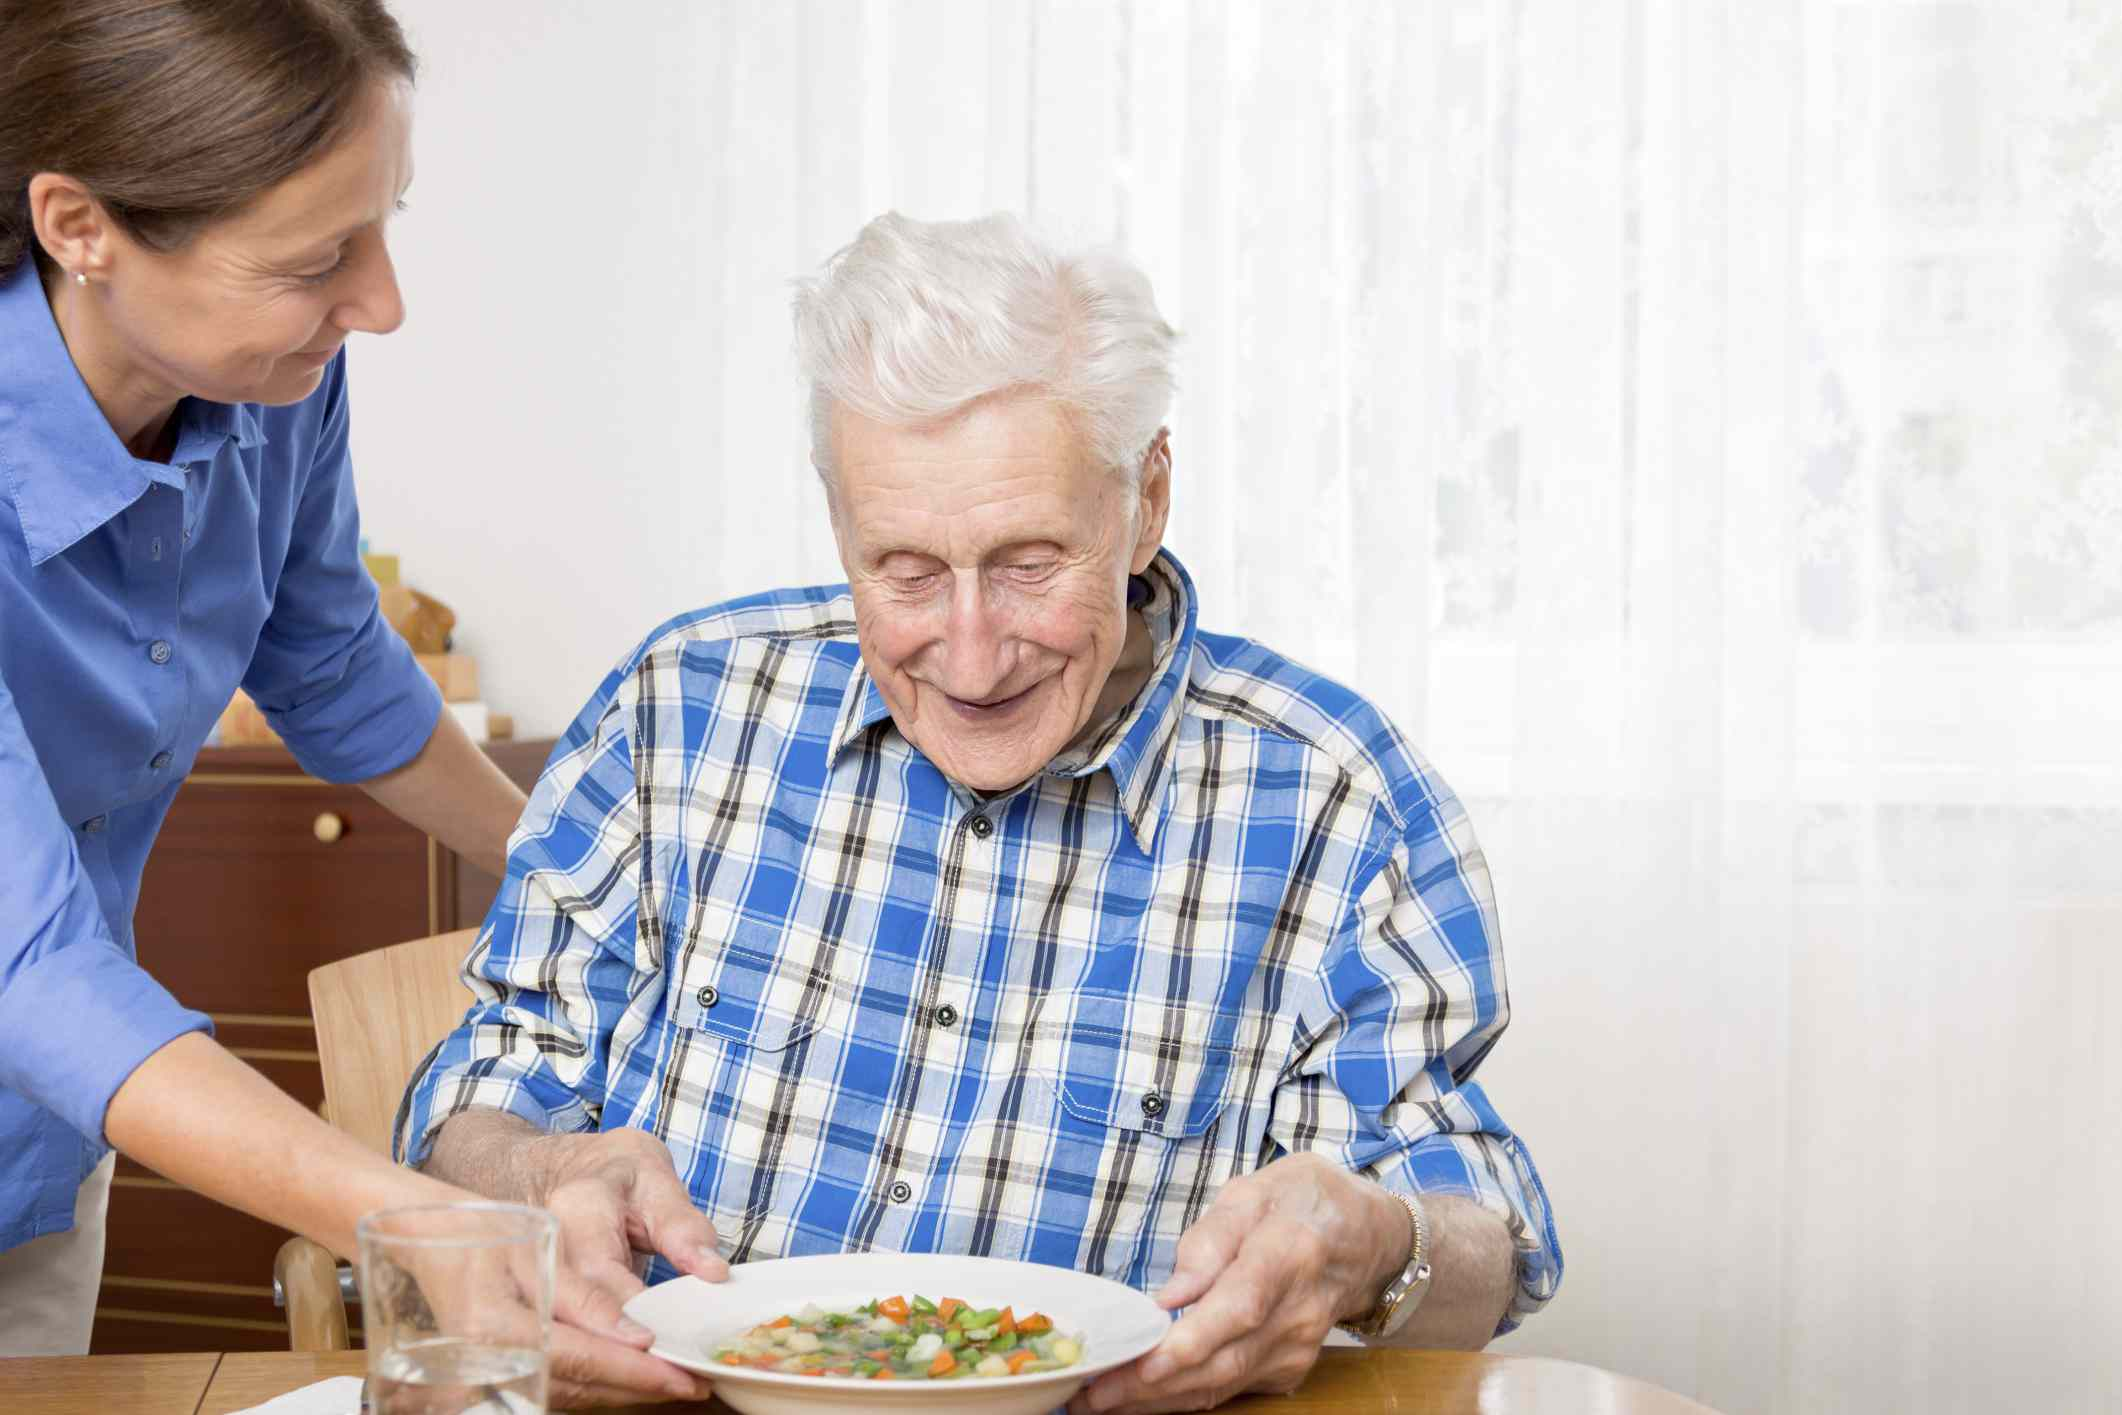 A woman helping an older man with Alzheimer's disease eat his dinner